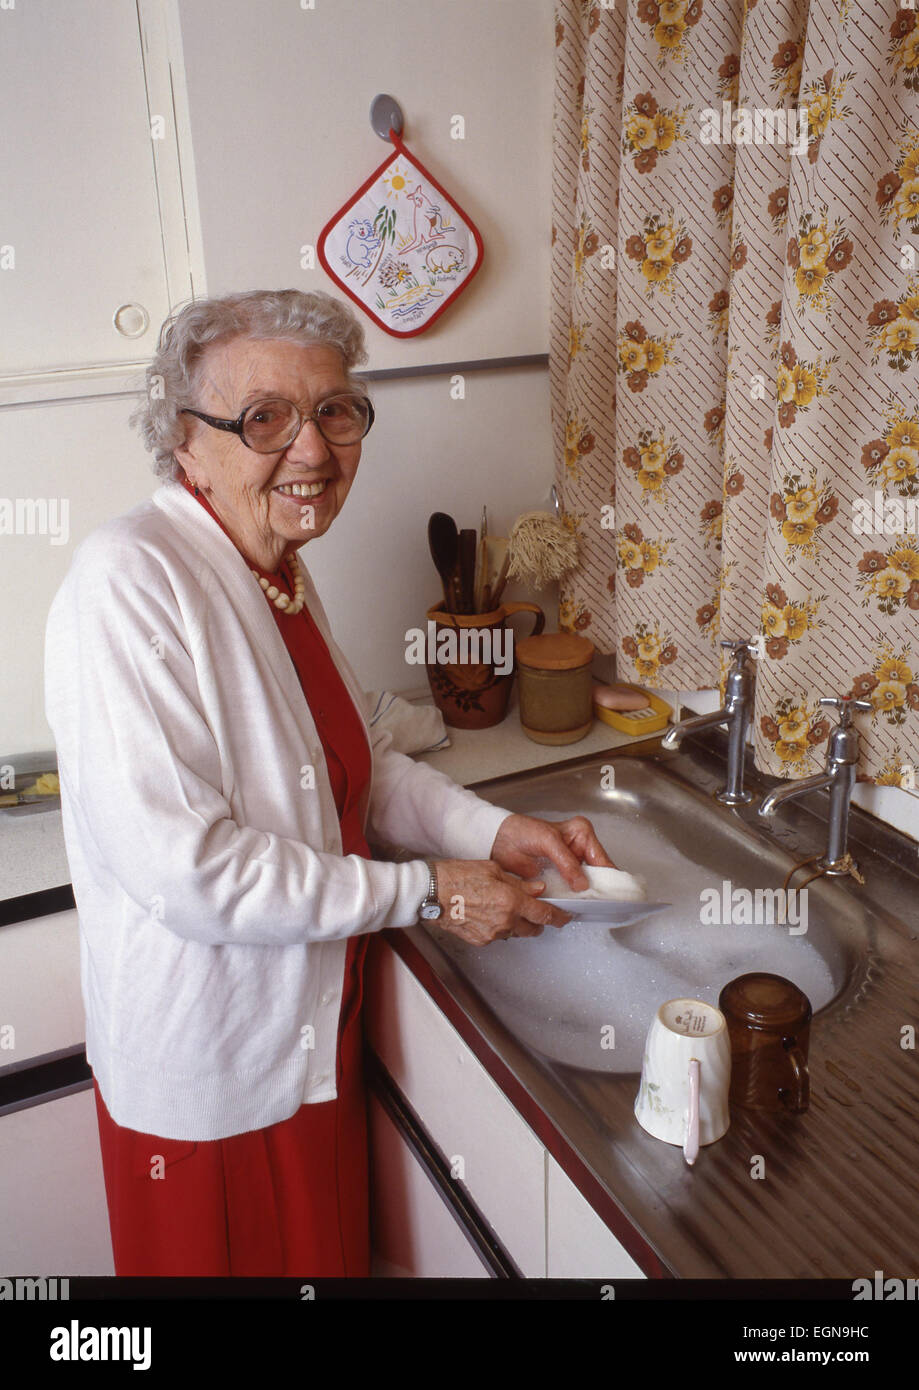 Old lady washing up at the sink in the kitchen - Stock Image